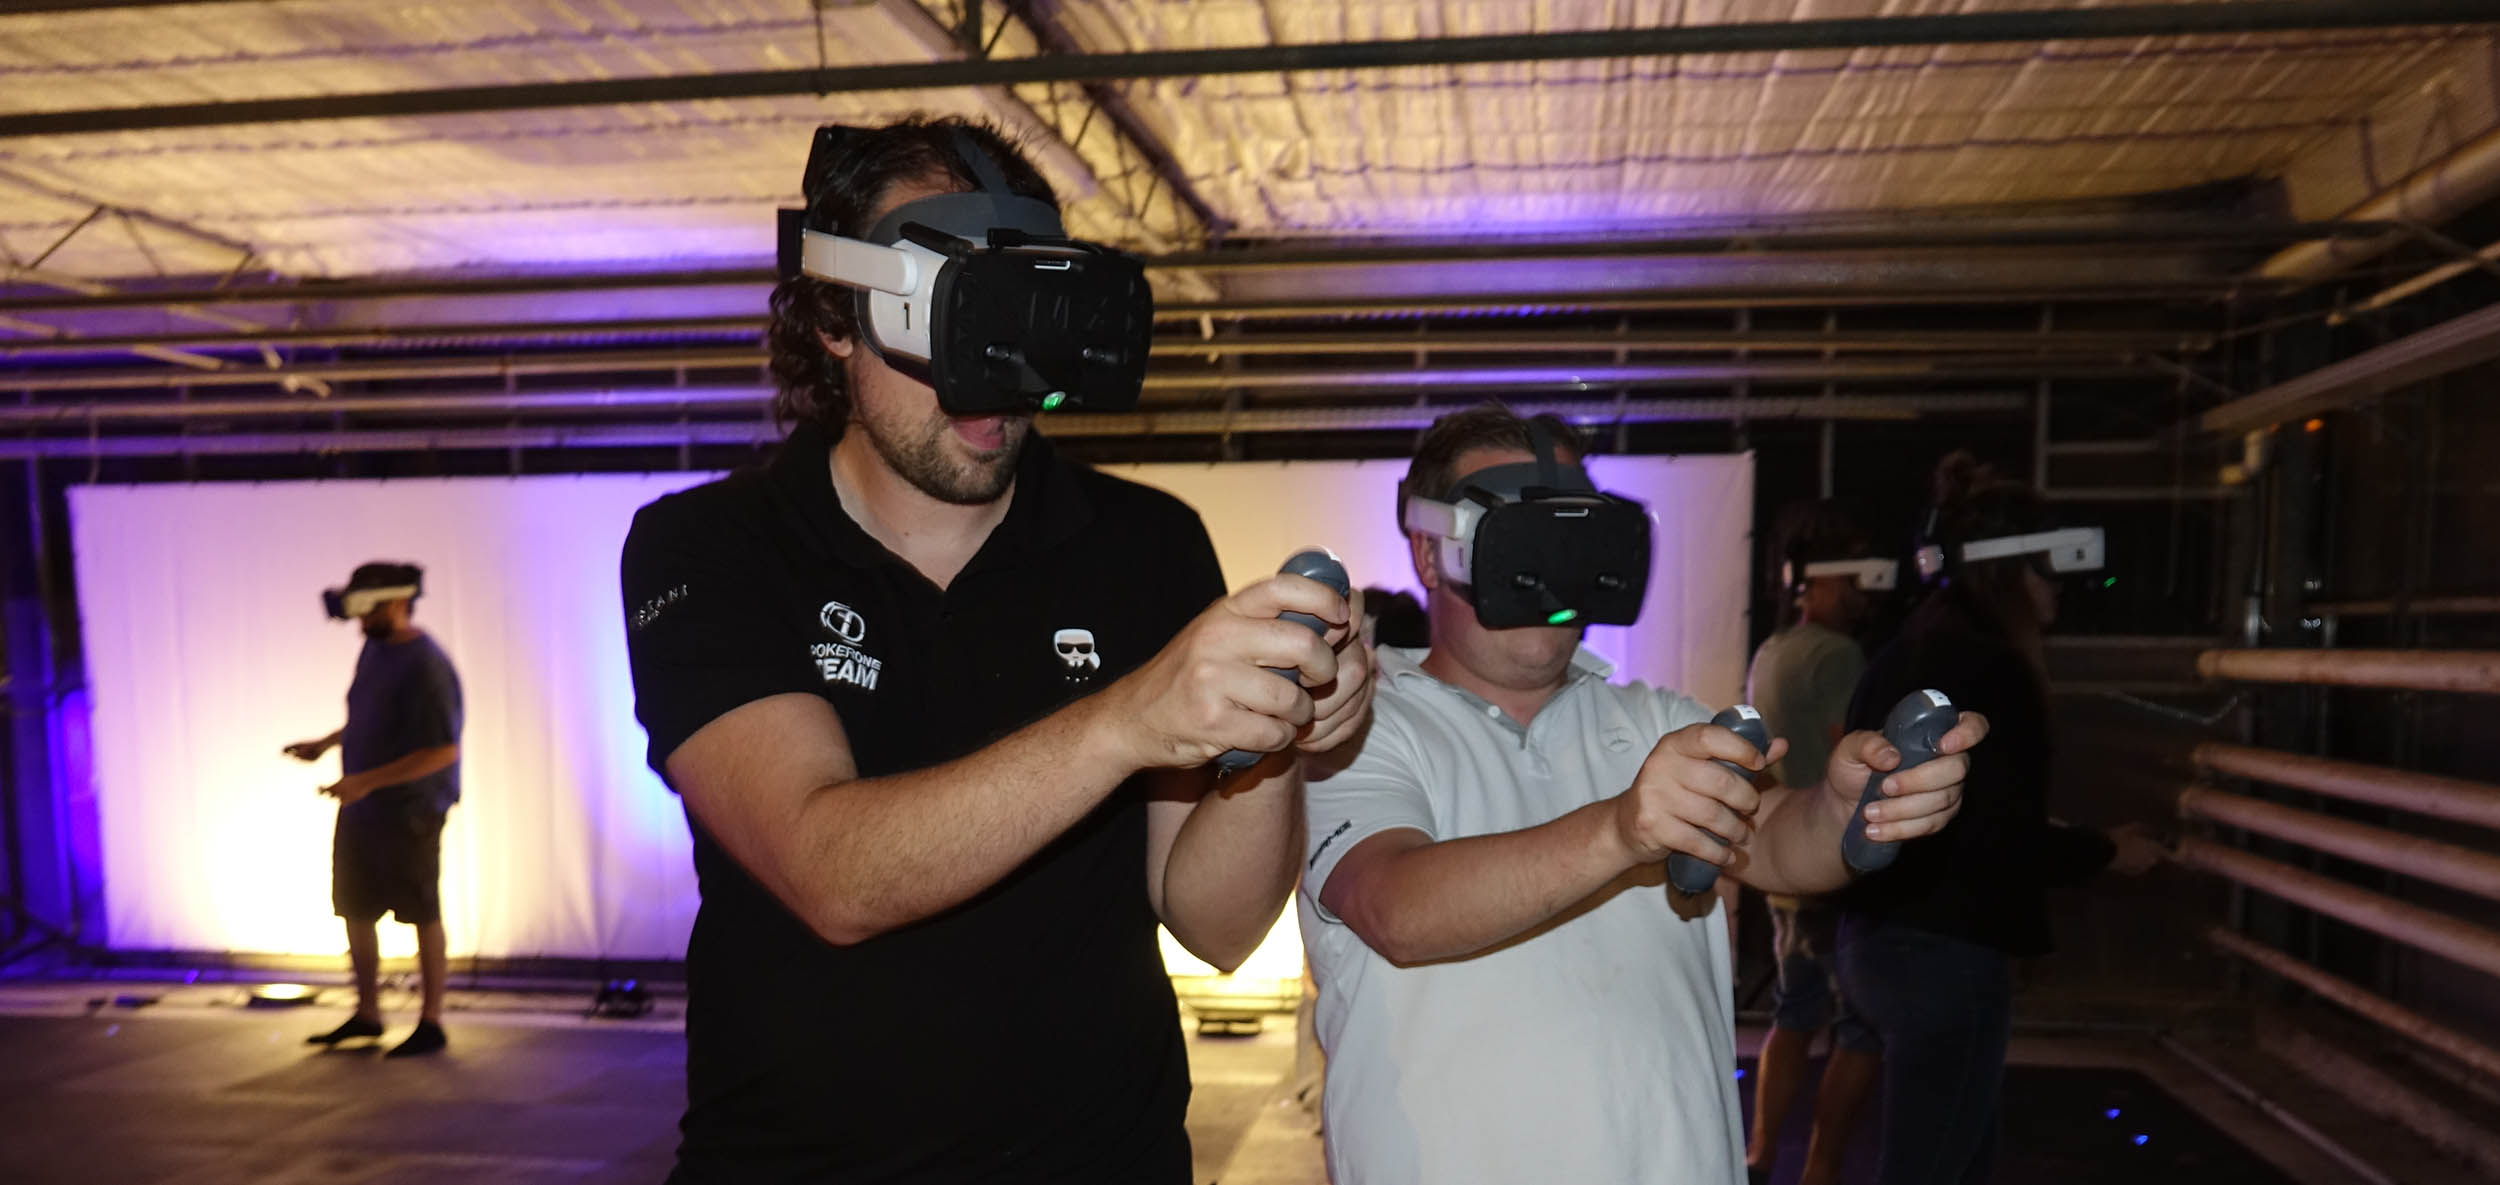 Compete in the VEX Esports contests, in virtual reality